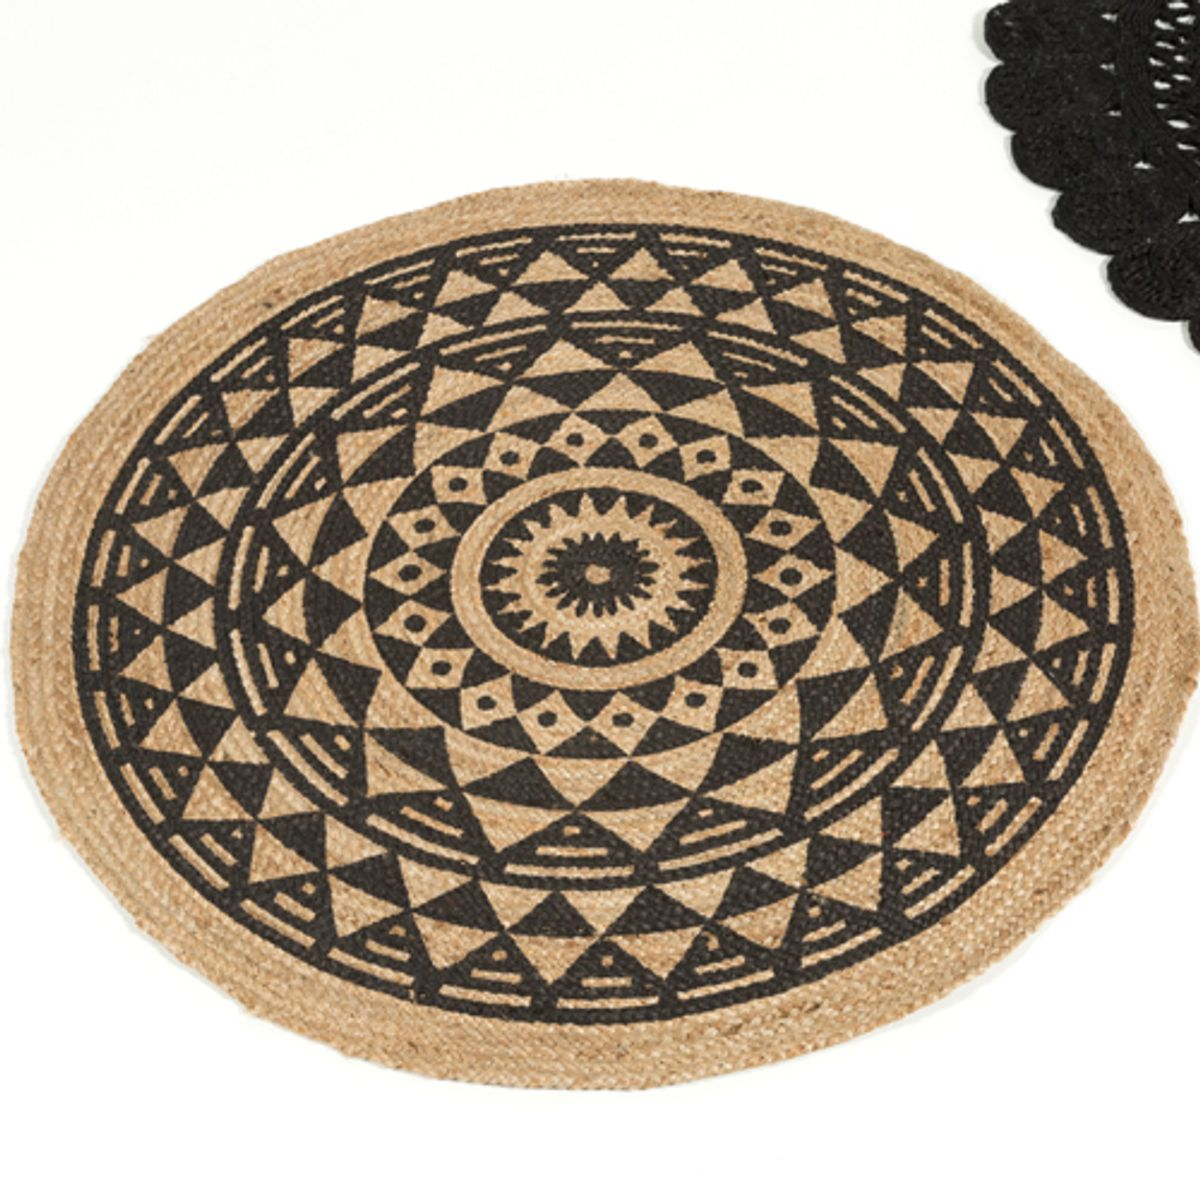 tapis rond r versible en jute naturel tiss main imprim d120 cm decoclico. Black Bedroom Furniture Sets. Home Design Ideas